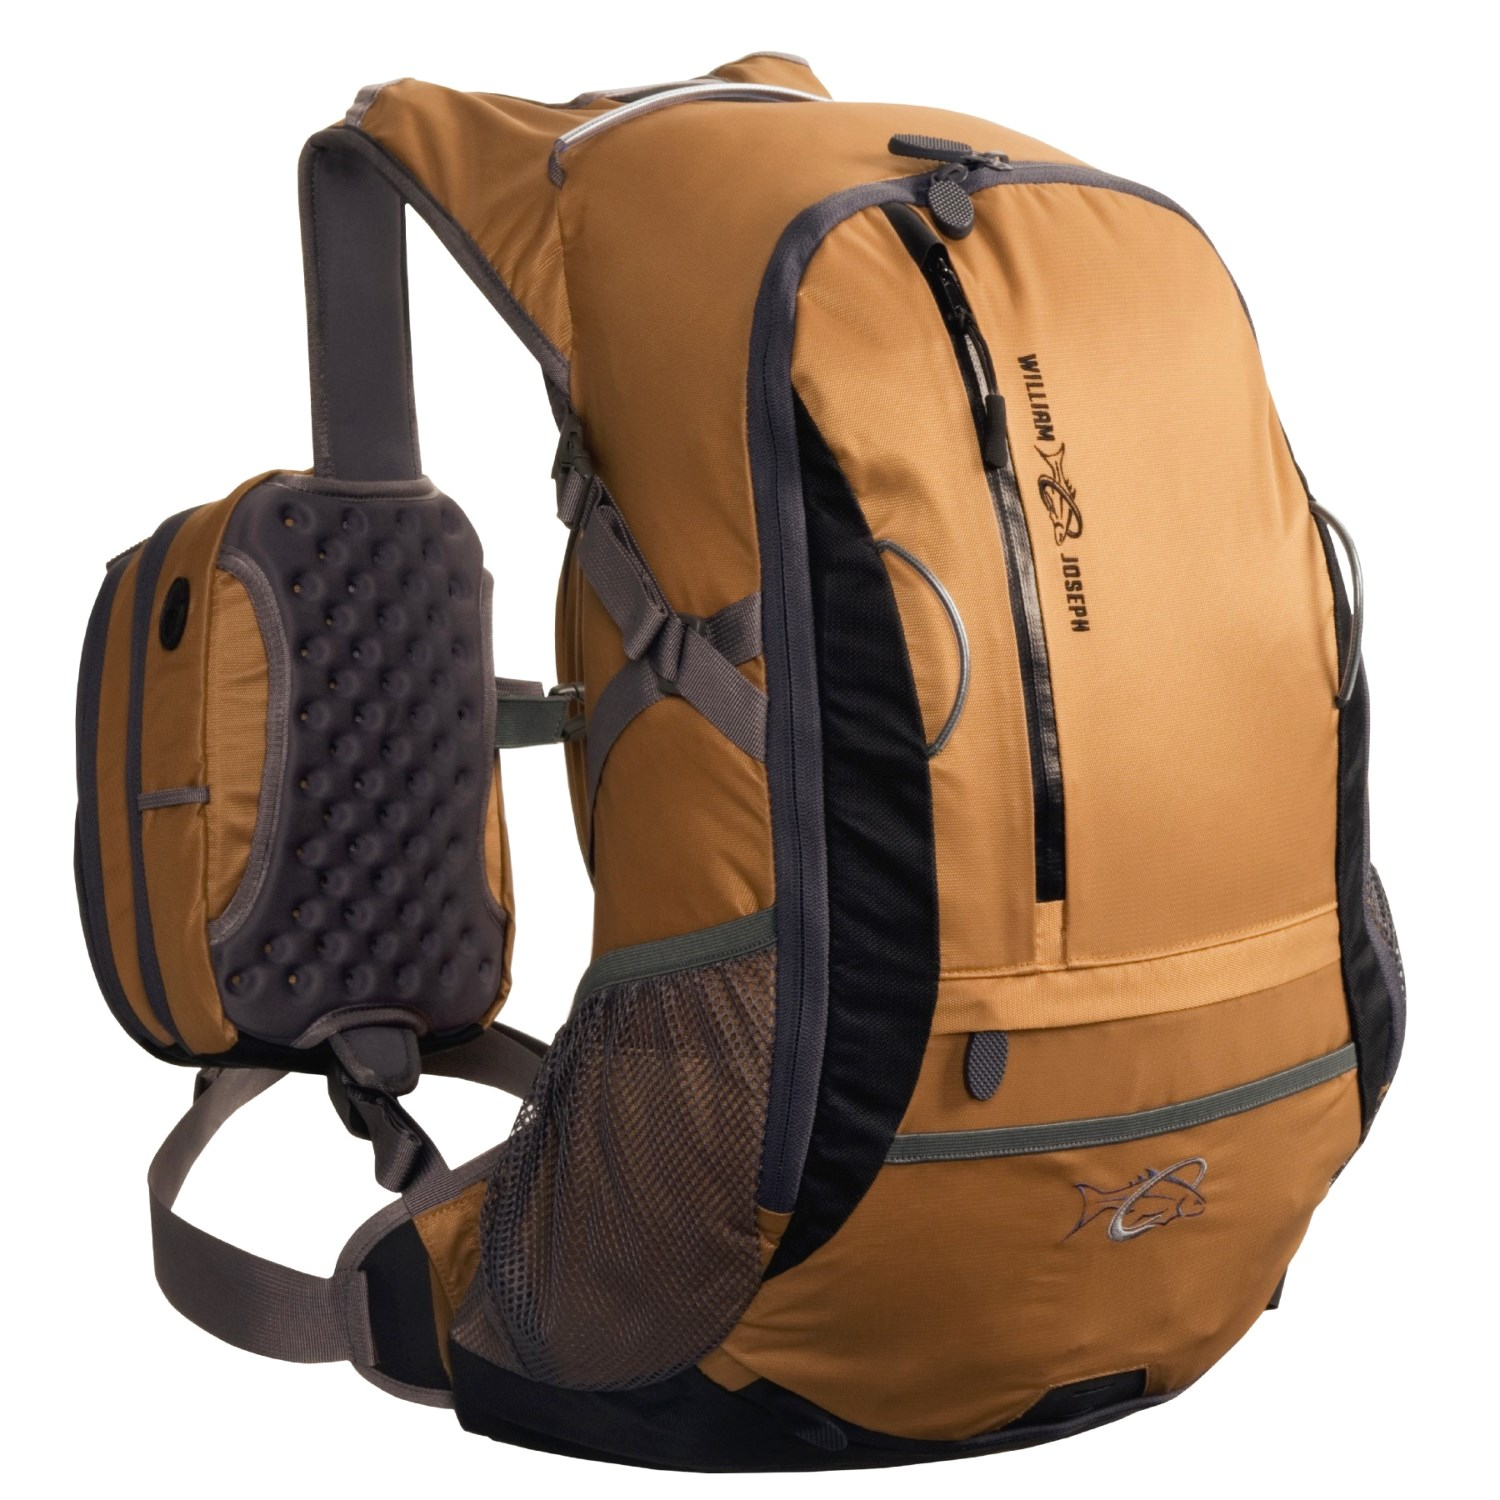 william joseph escape fly fishing backpack with dual chest